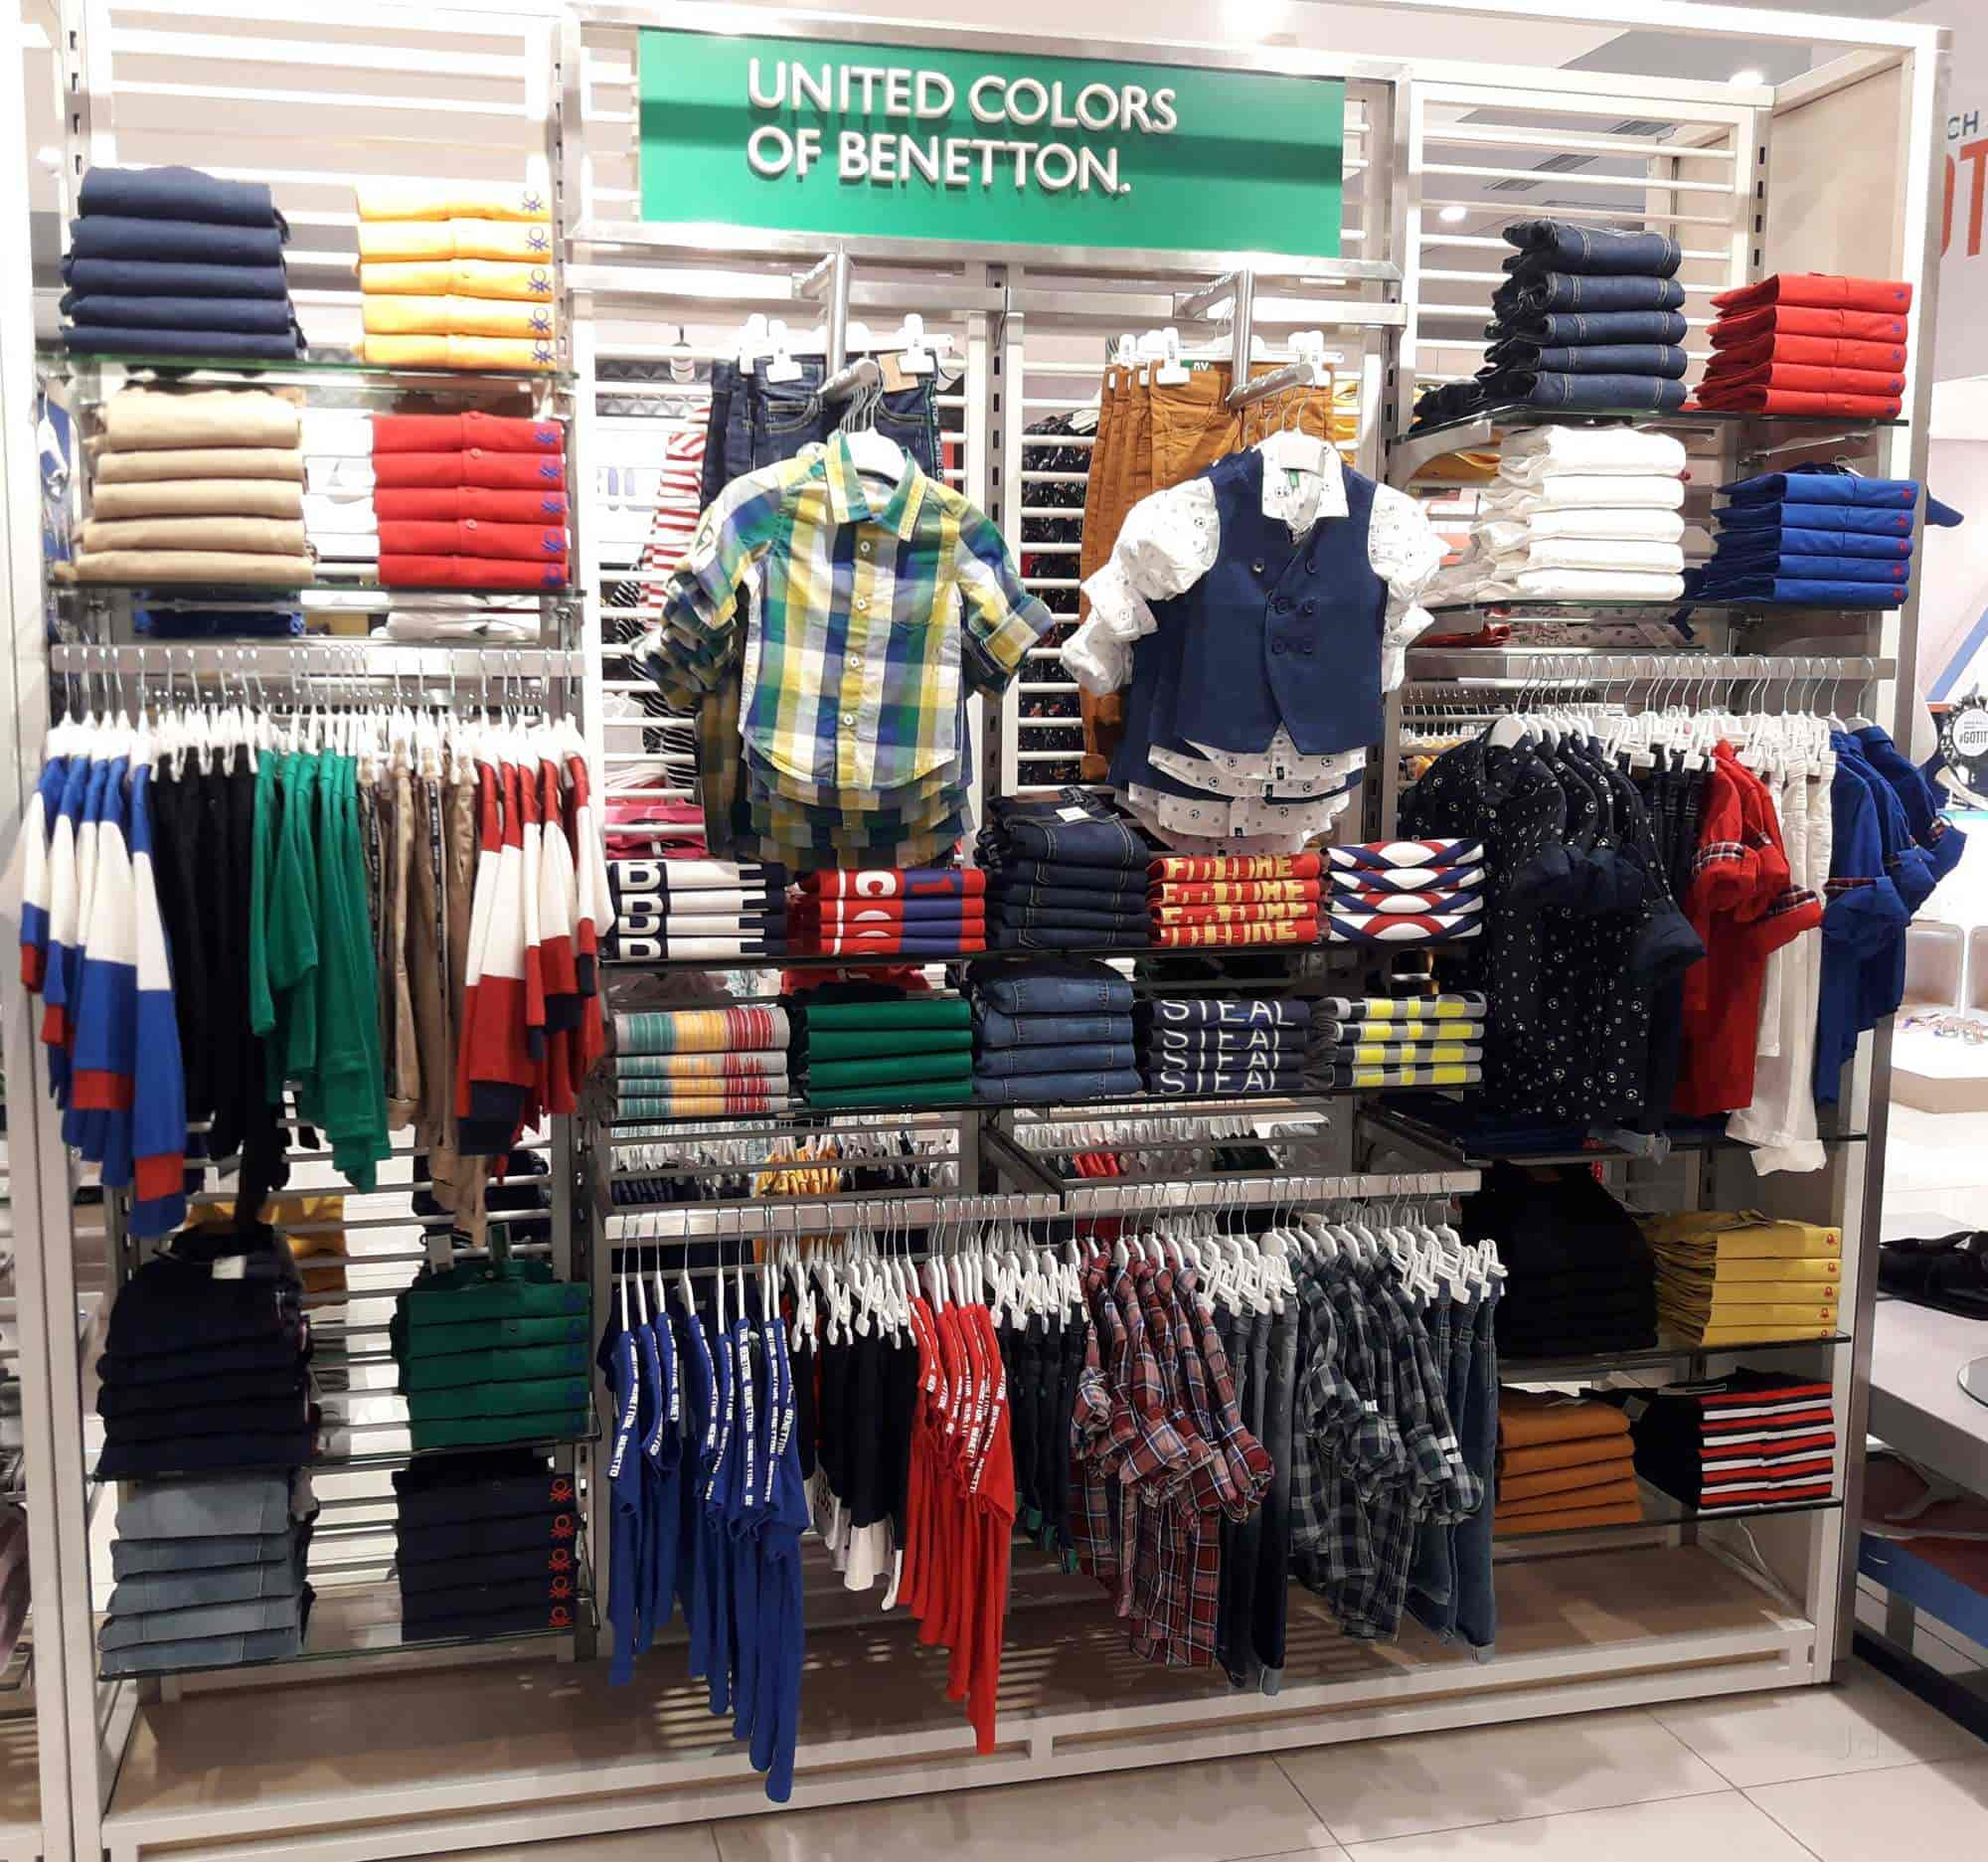 802de770e31492 Lifestyle Store (The Great India Place), Sector 38 - Readymade Garment  Retailers in Noida, Delhi - Justdial